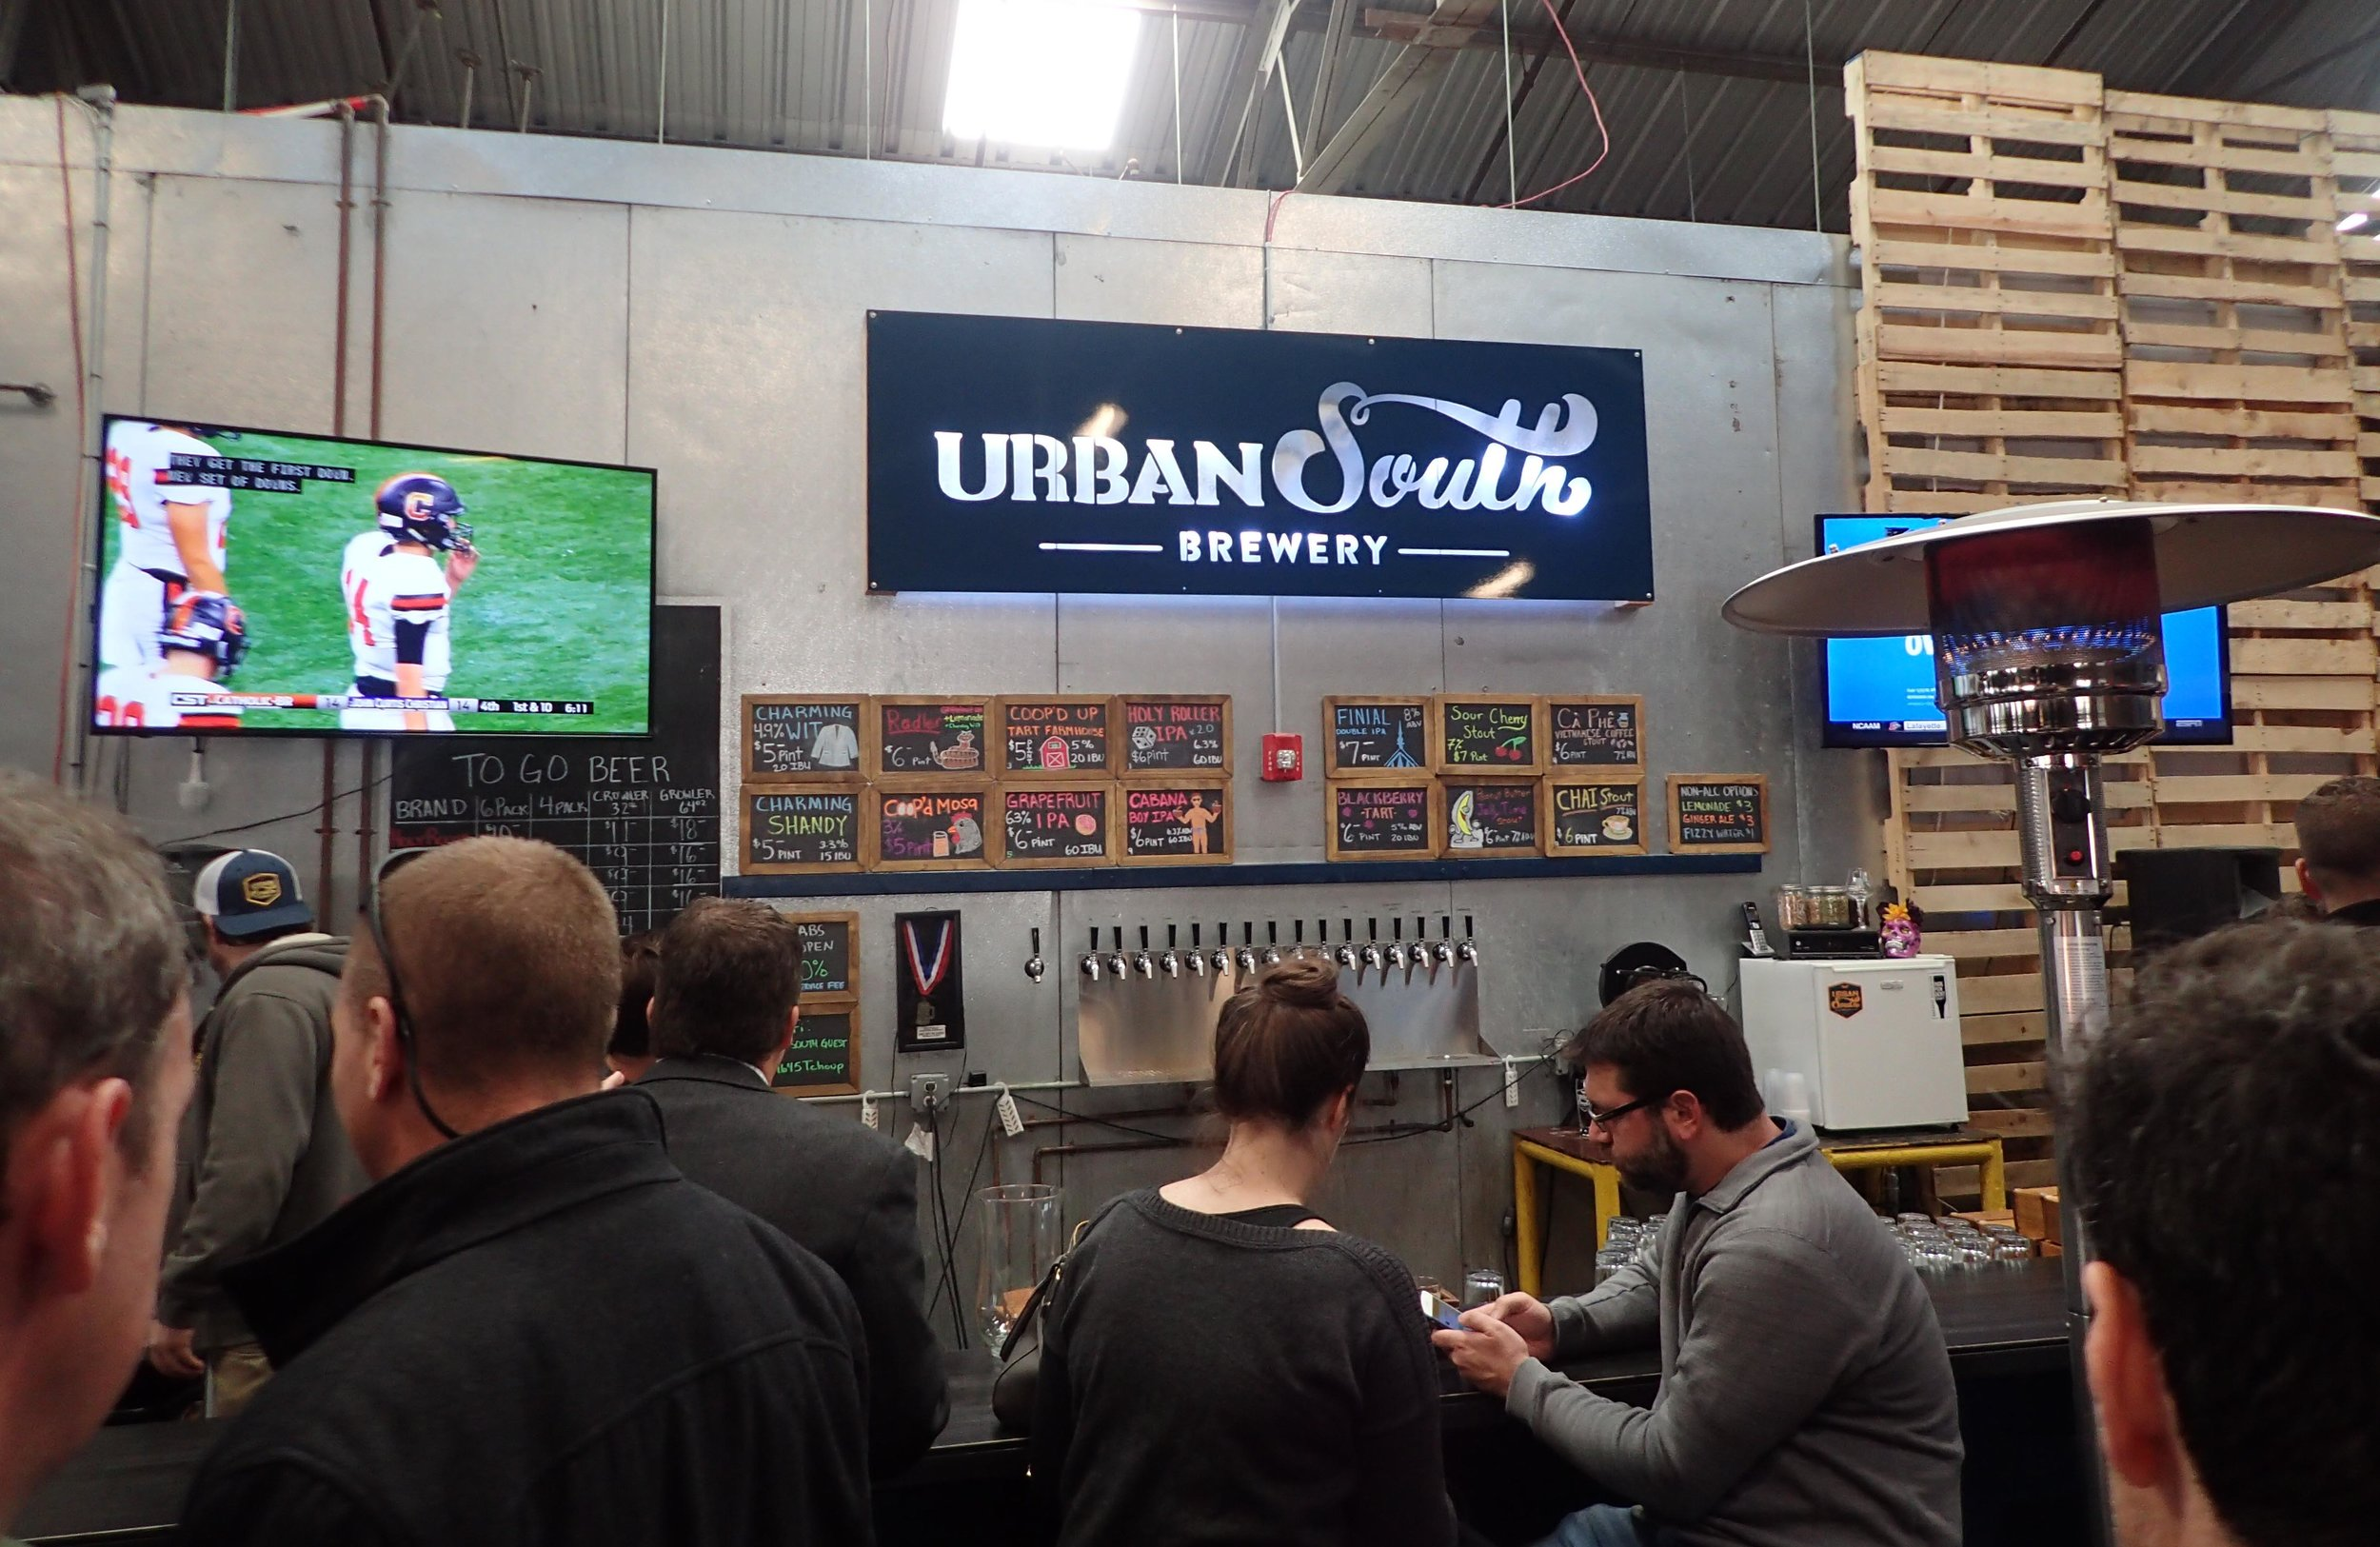 Urban South Brewery.jpg